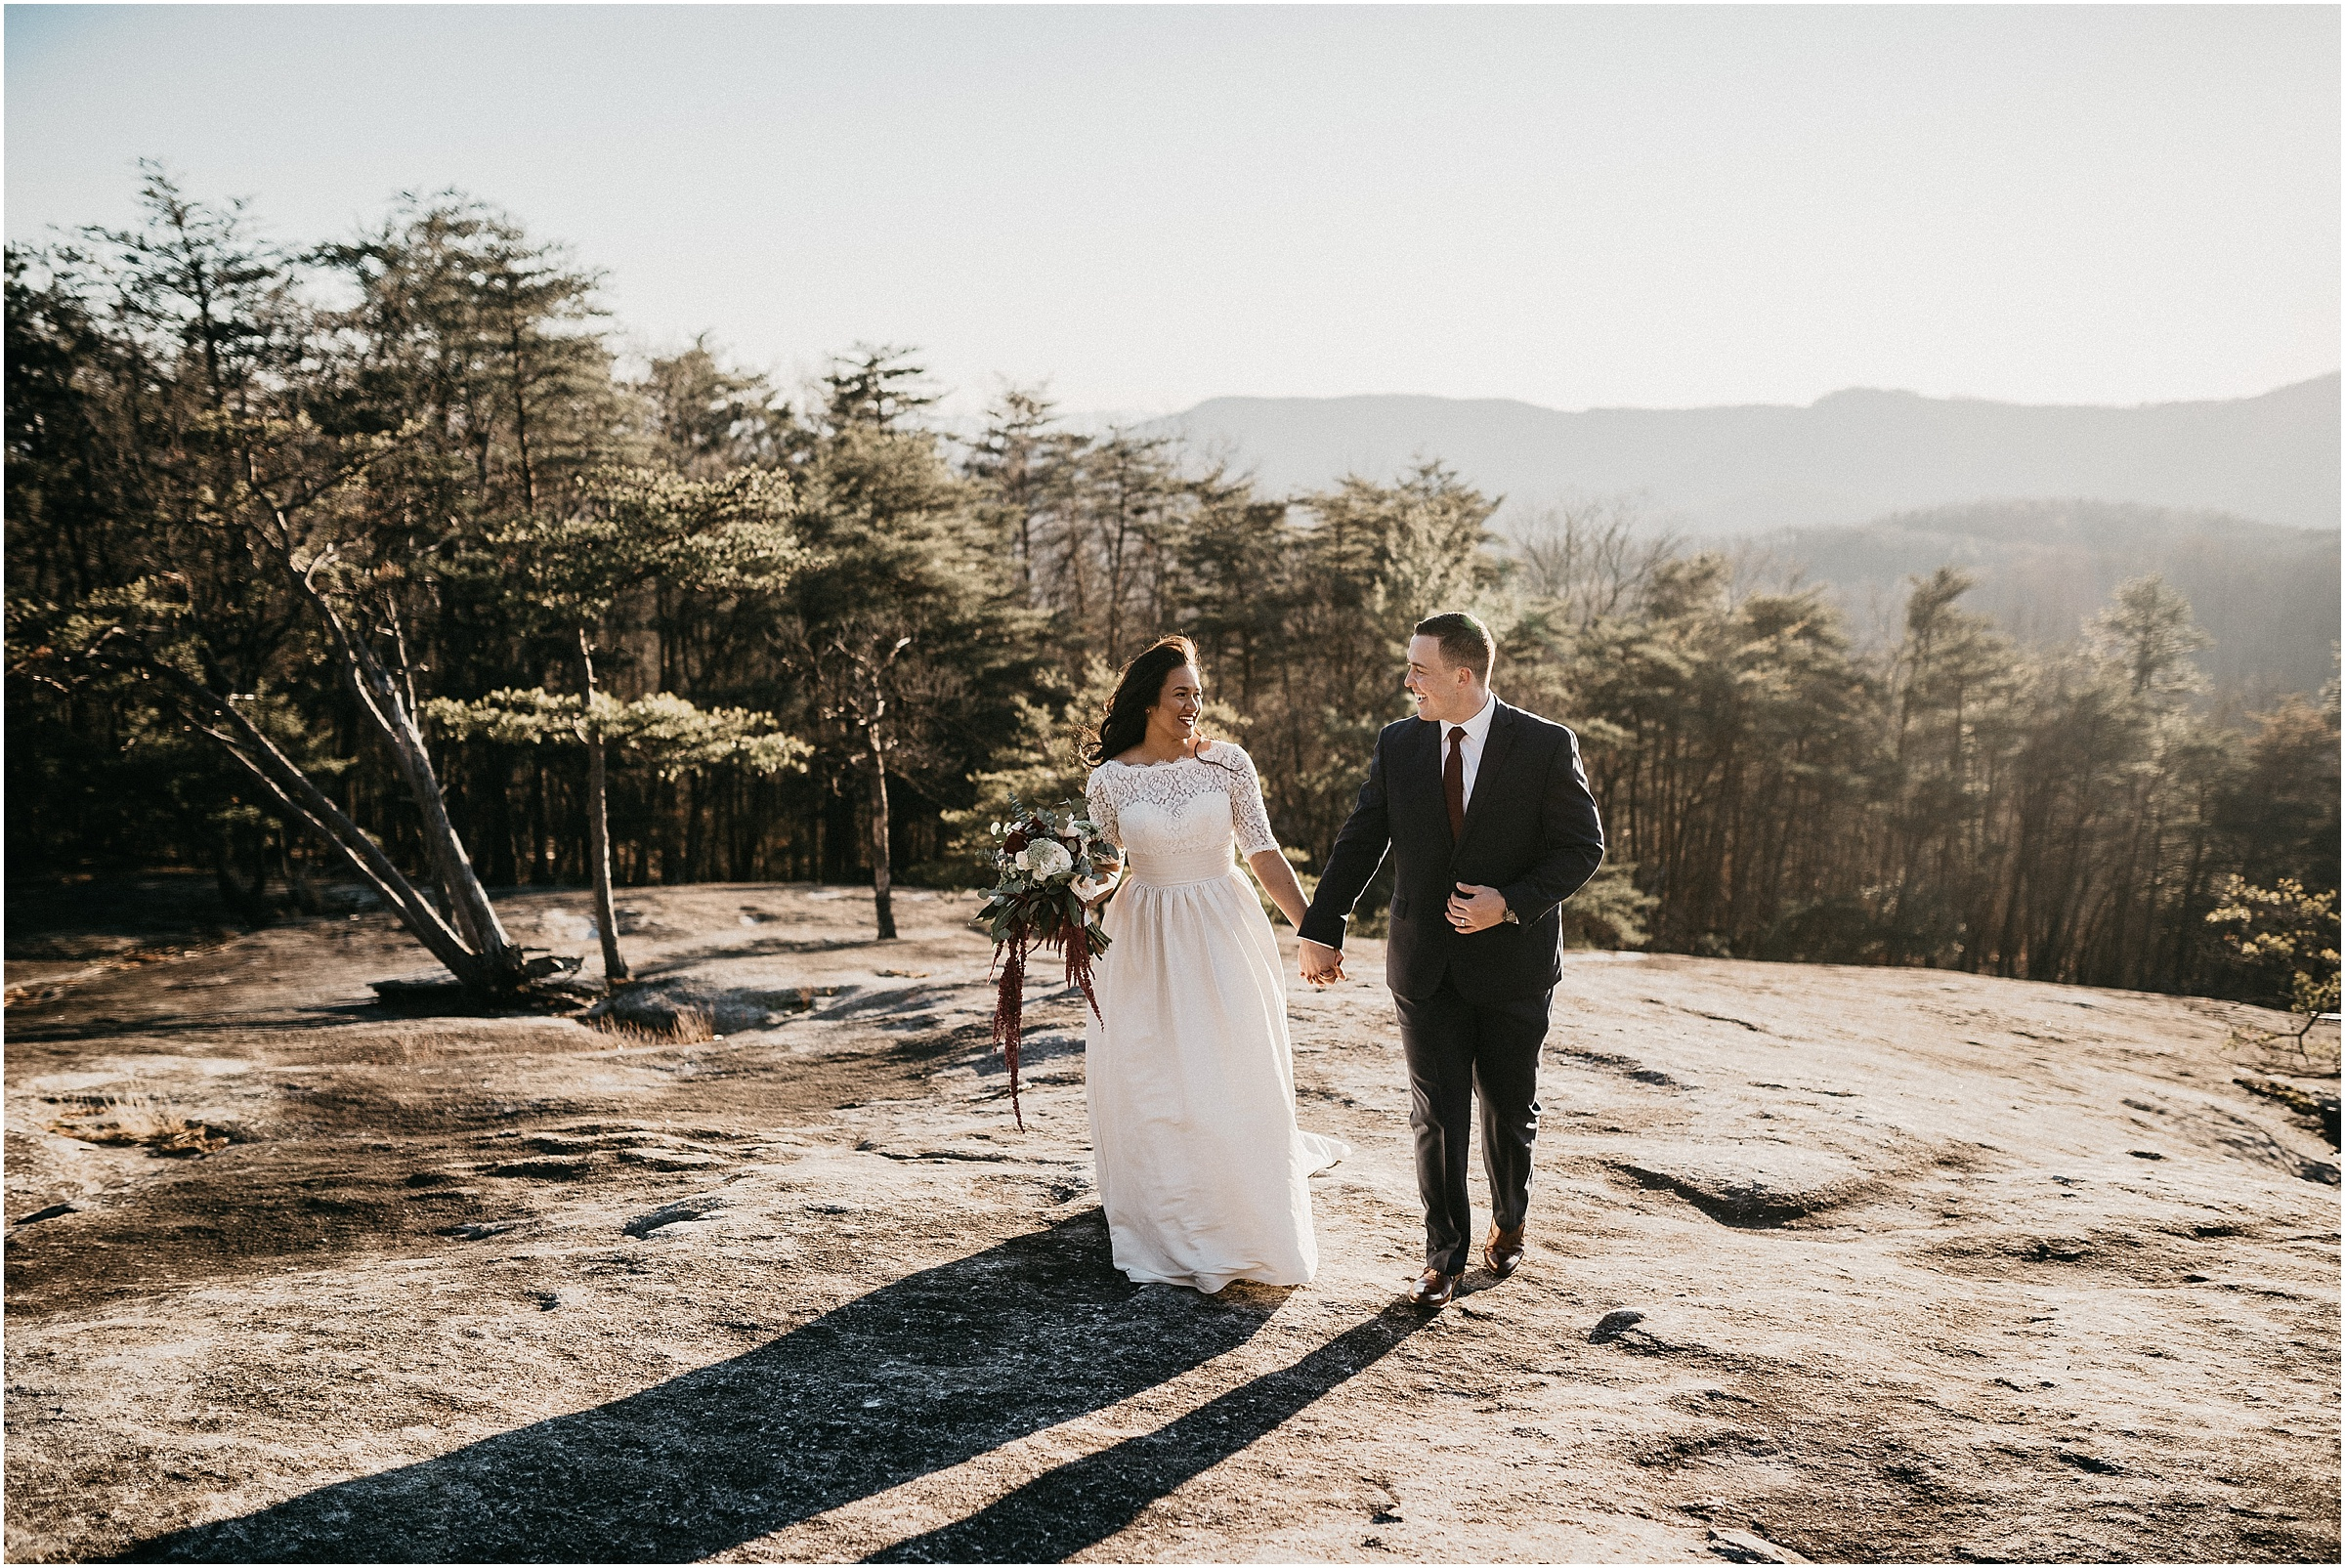 Stone_Mountain_NC_Elopement_28.JPG